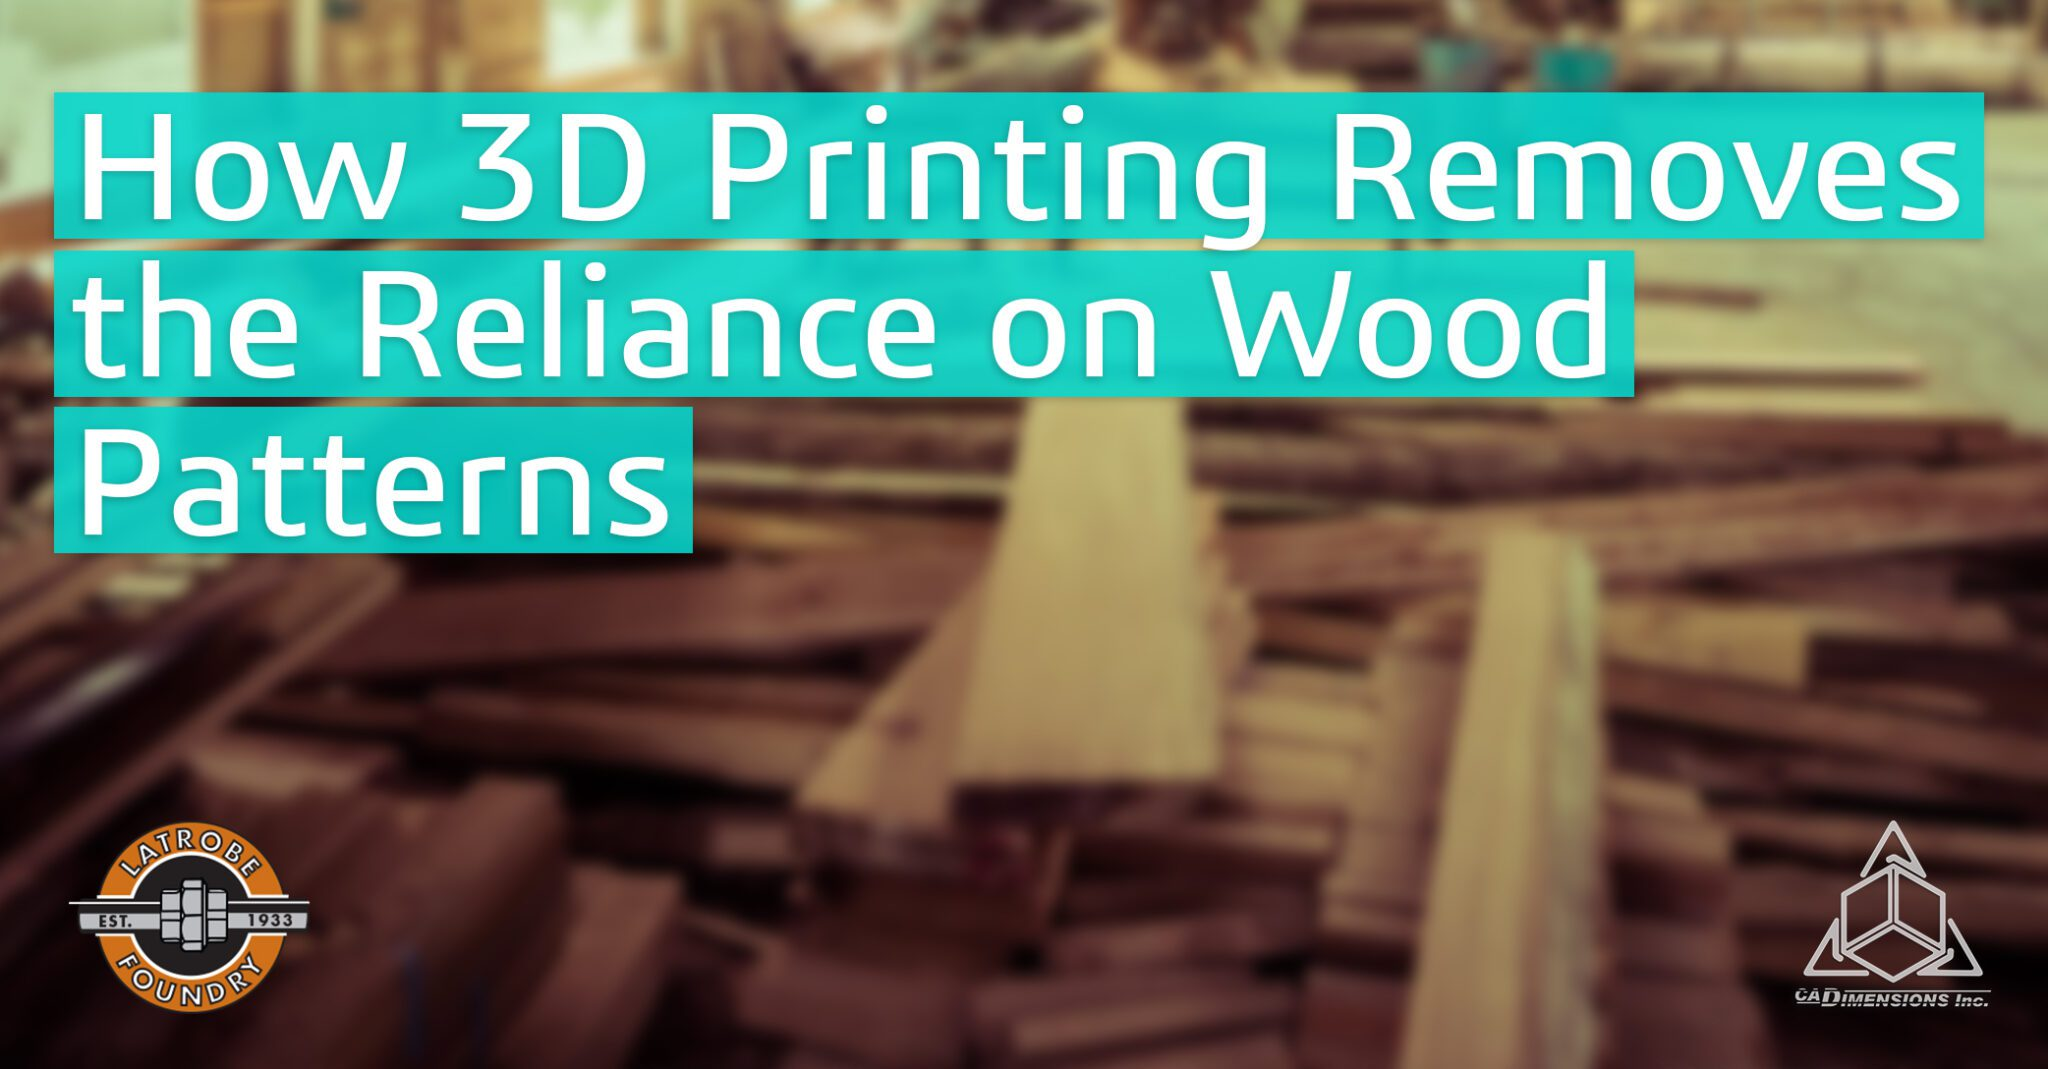 How 3D Printing Removes the Reliance on Wood Patterns